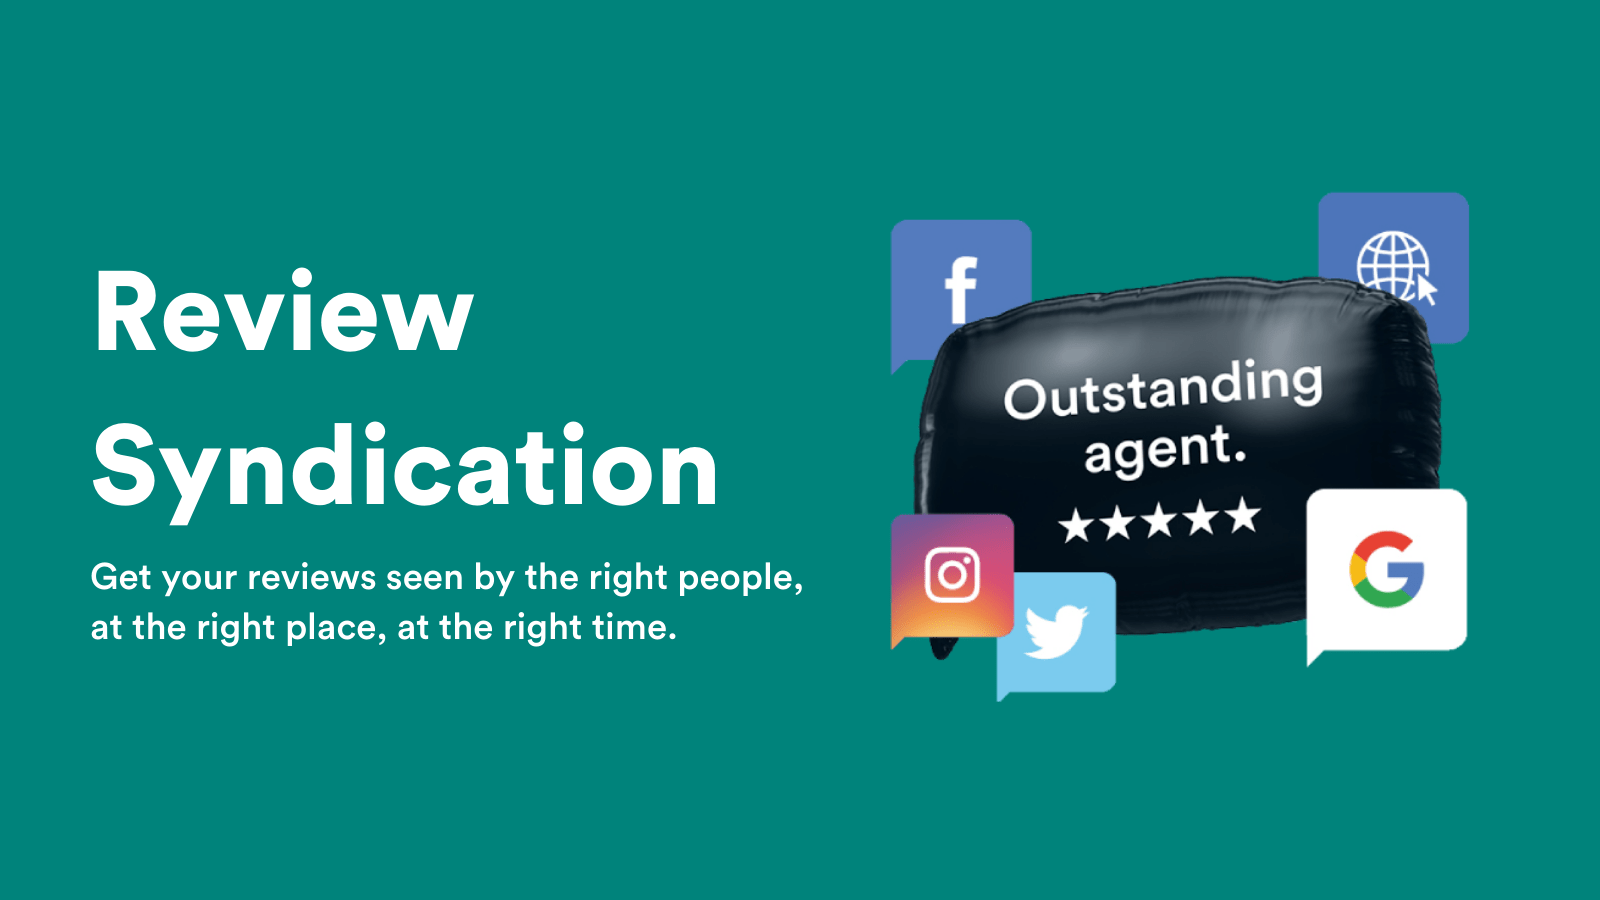 Get your reviews seen by the right people, at the right place, at the right time